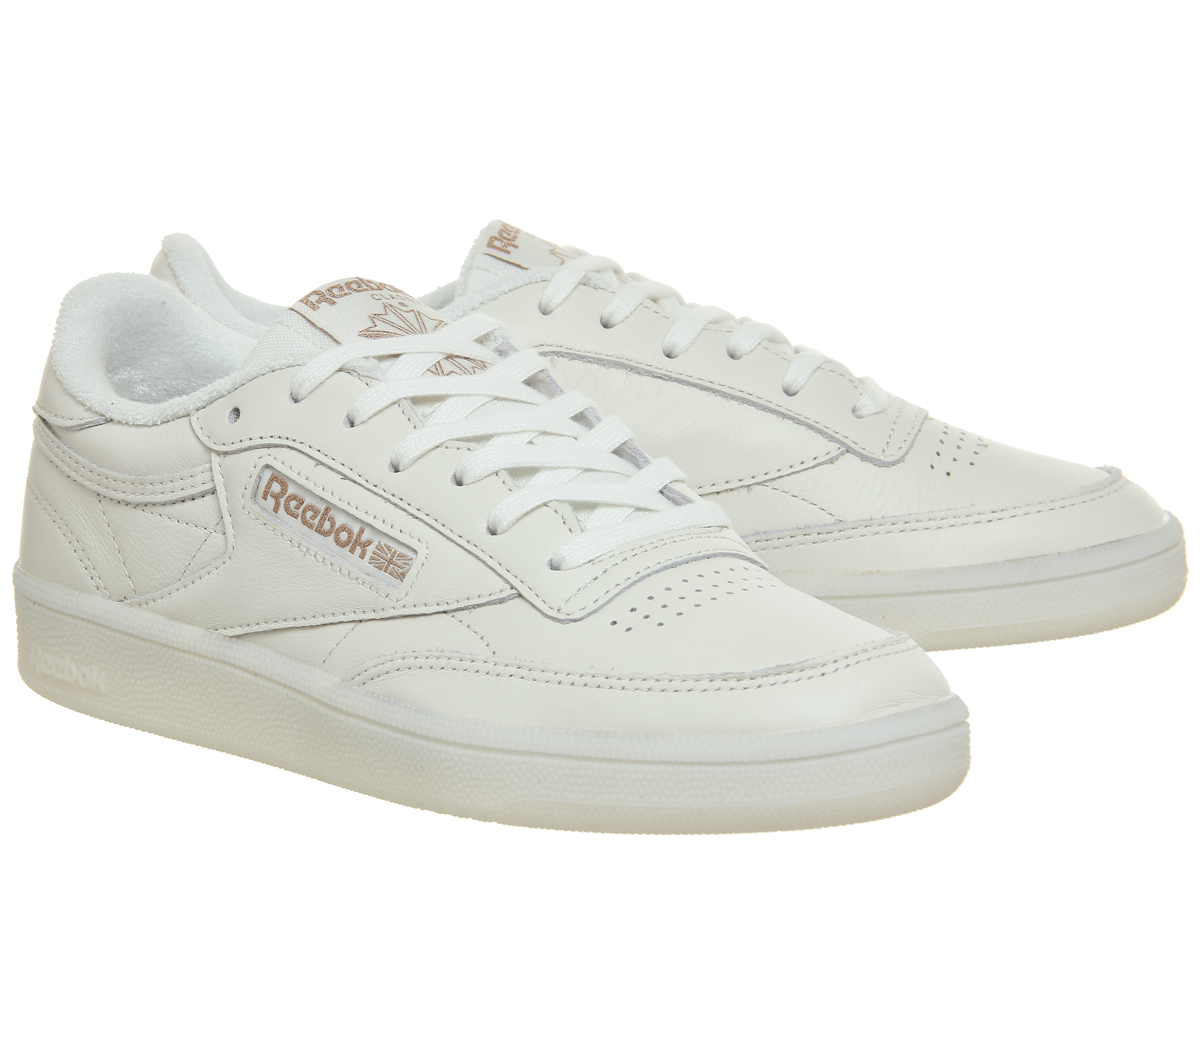 84a1fa957d5 Haut femme Reebok Club C 85 Baskets Craie Or Rose Exclusive Trainers ...